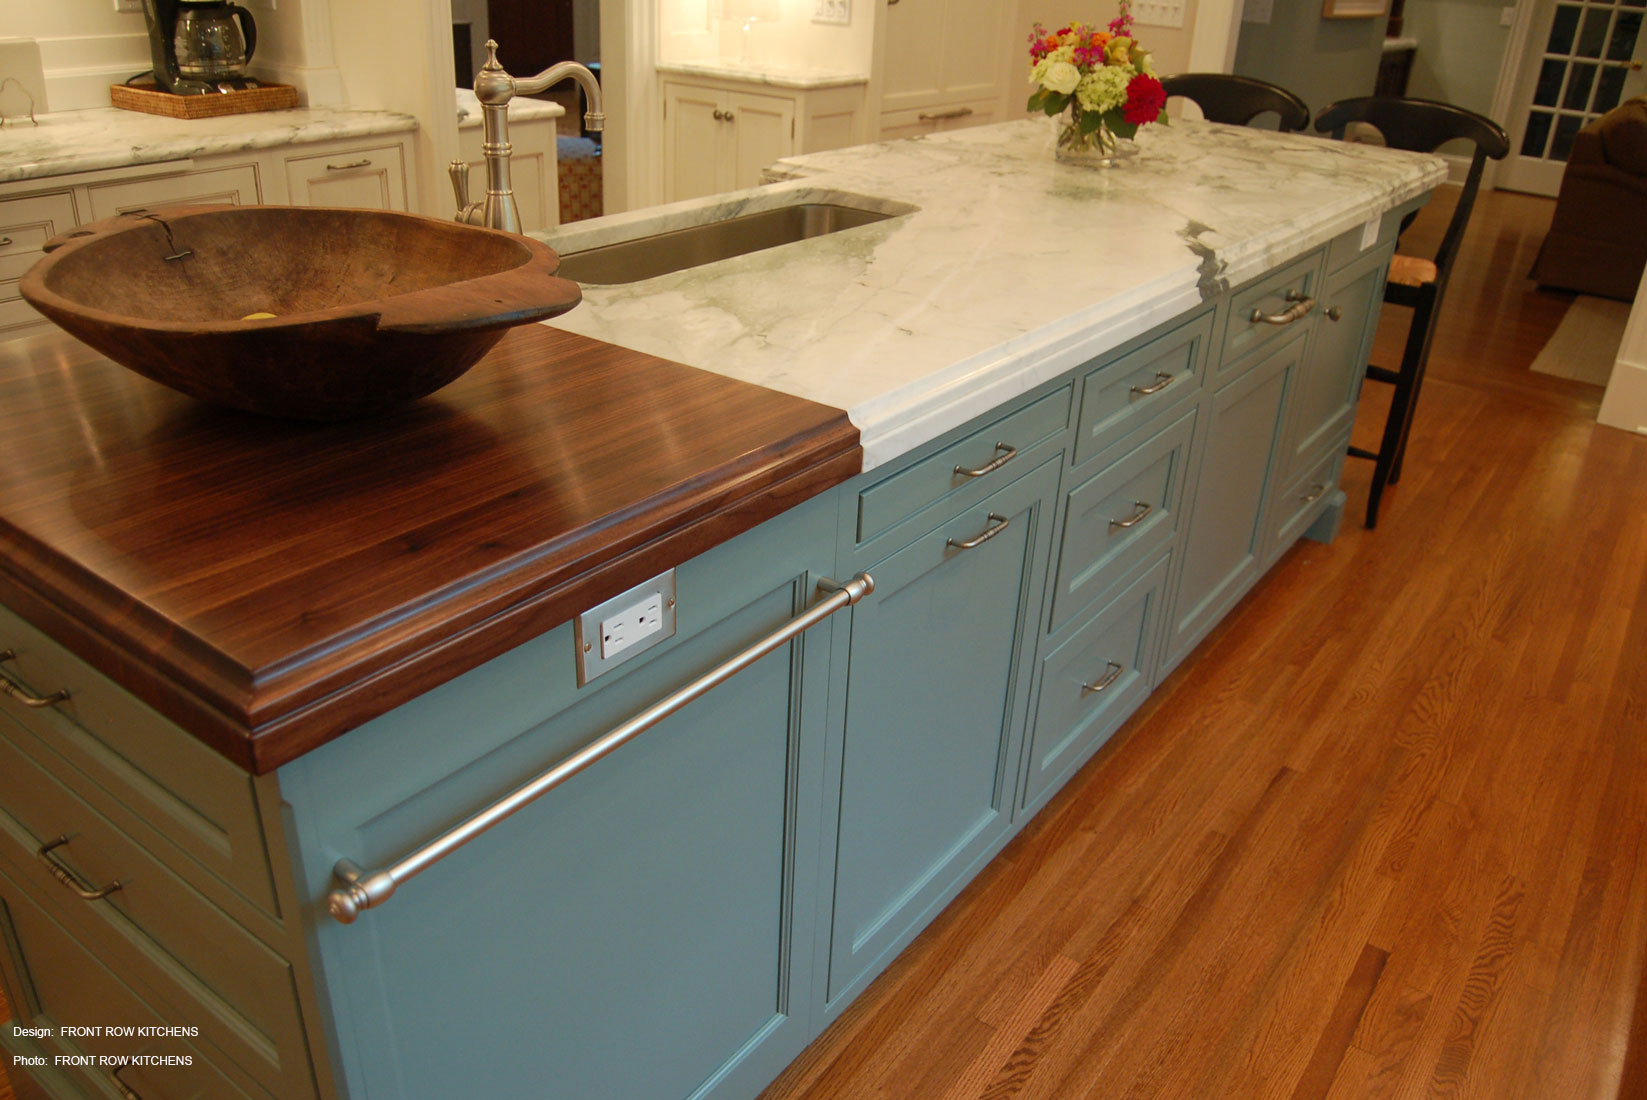 How To Waterproof Wood Countertop Raging River Gallery Of Wood Counter Solutions